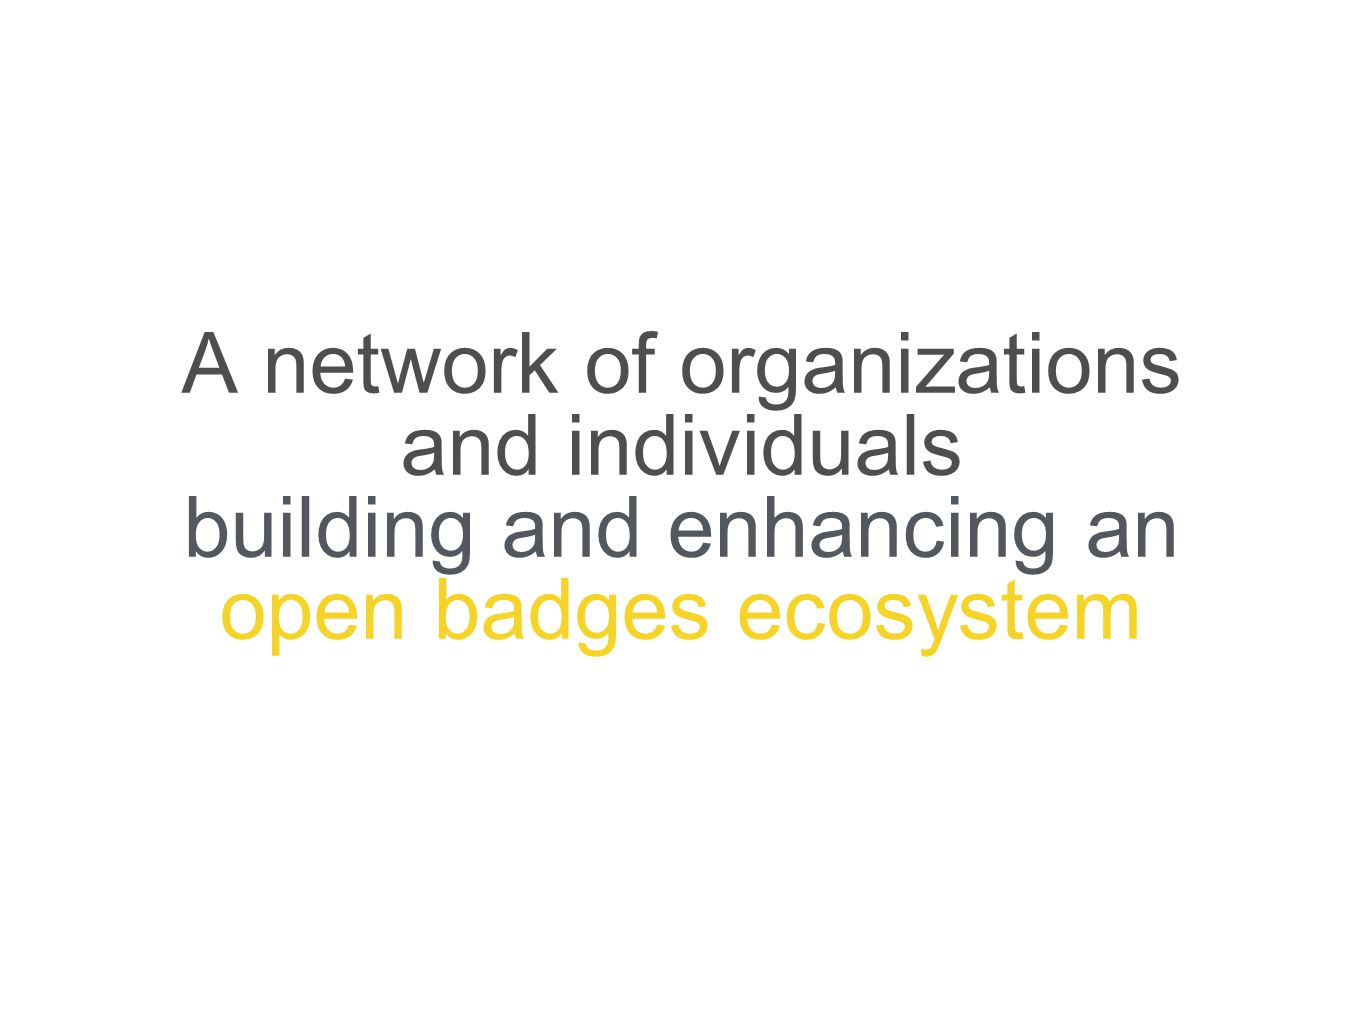 A network of organizations and individuals building and enhancing an open badges ecosystem